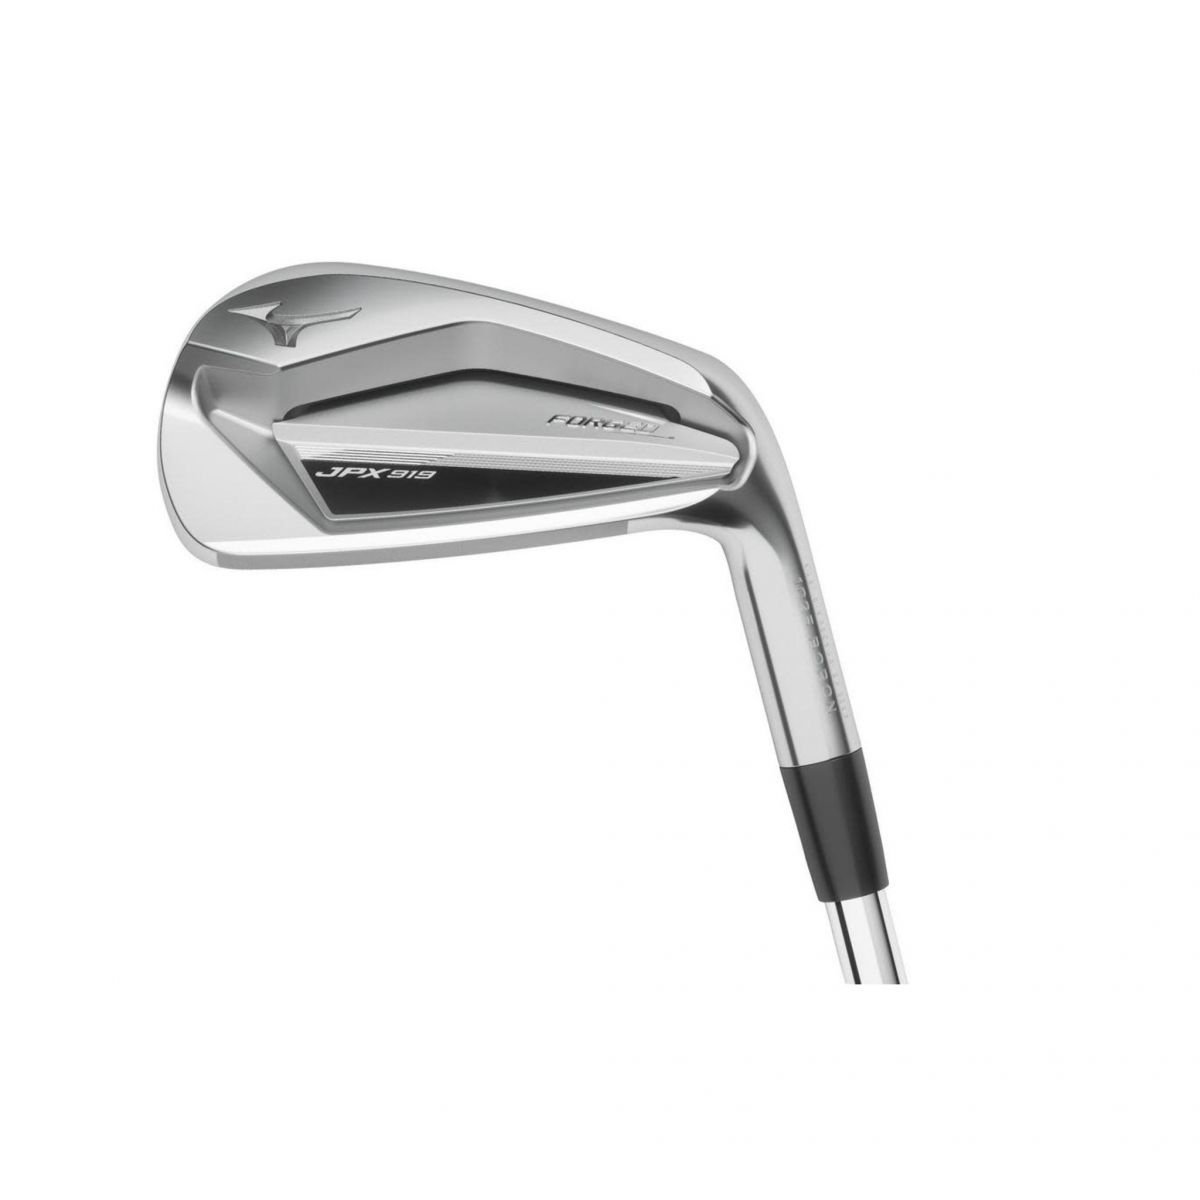 Gậy golf iron Mizuno JPX 919 Forged